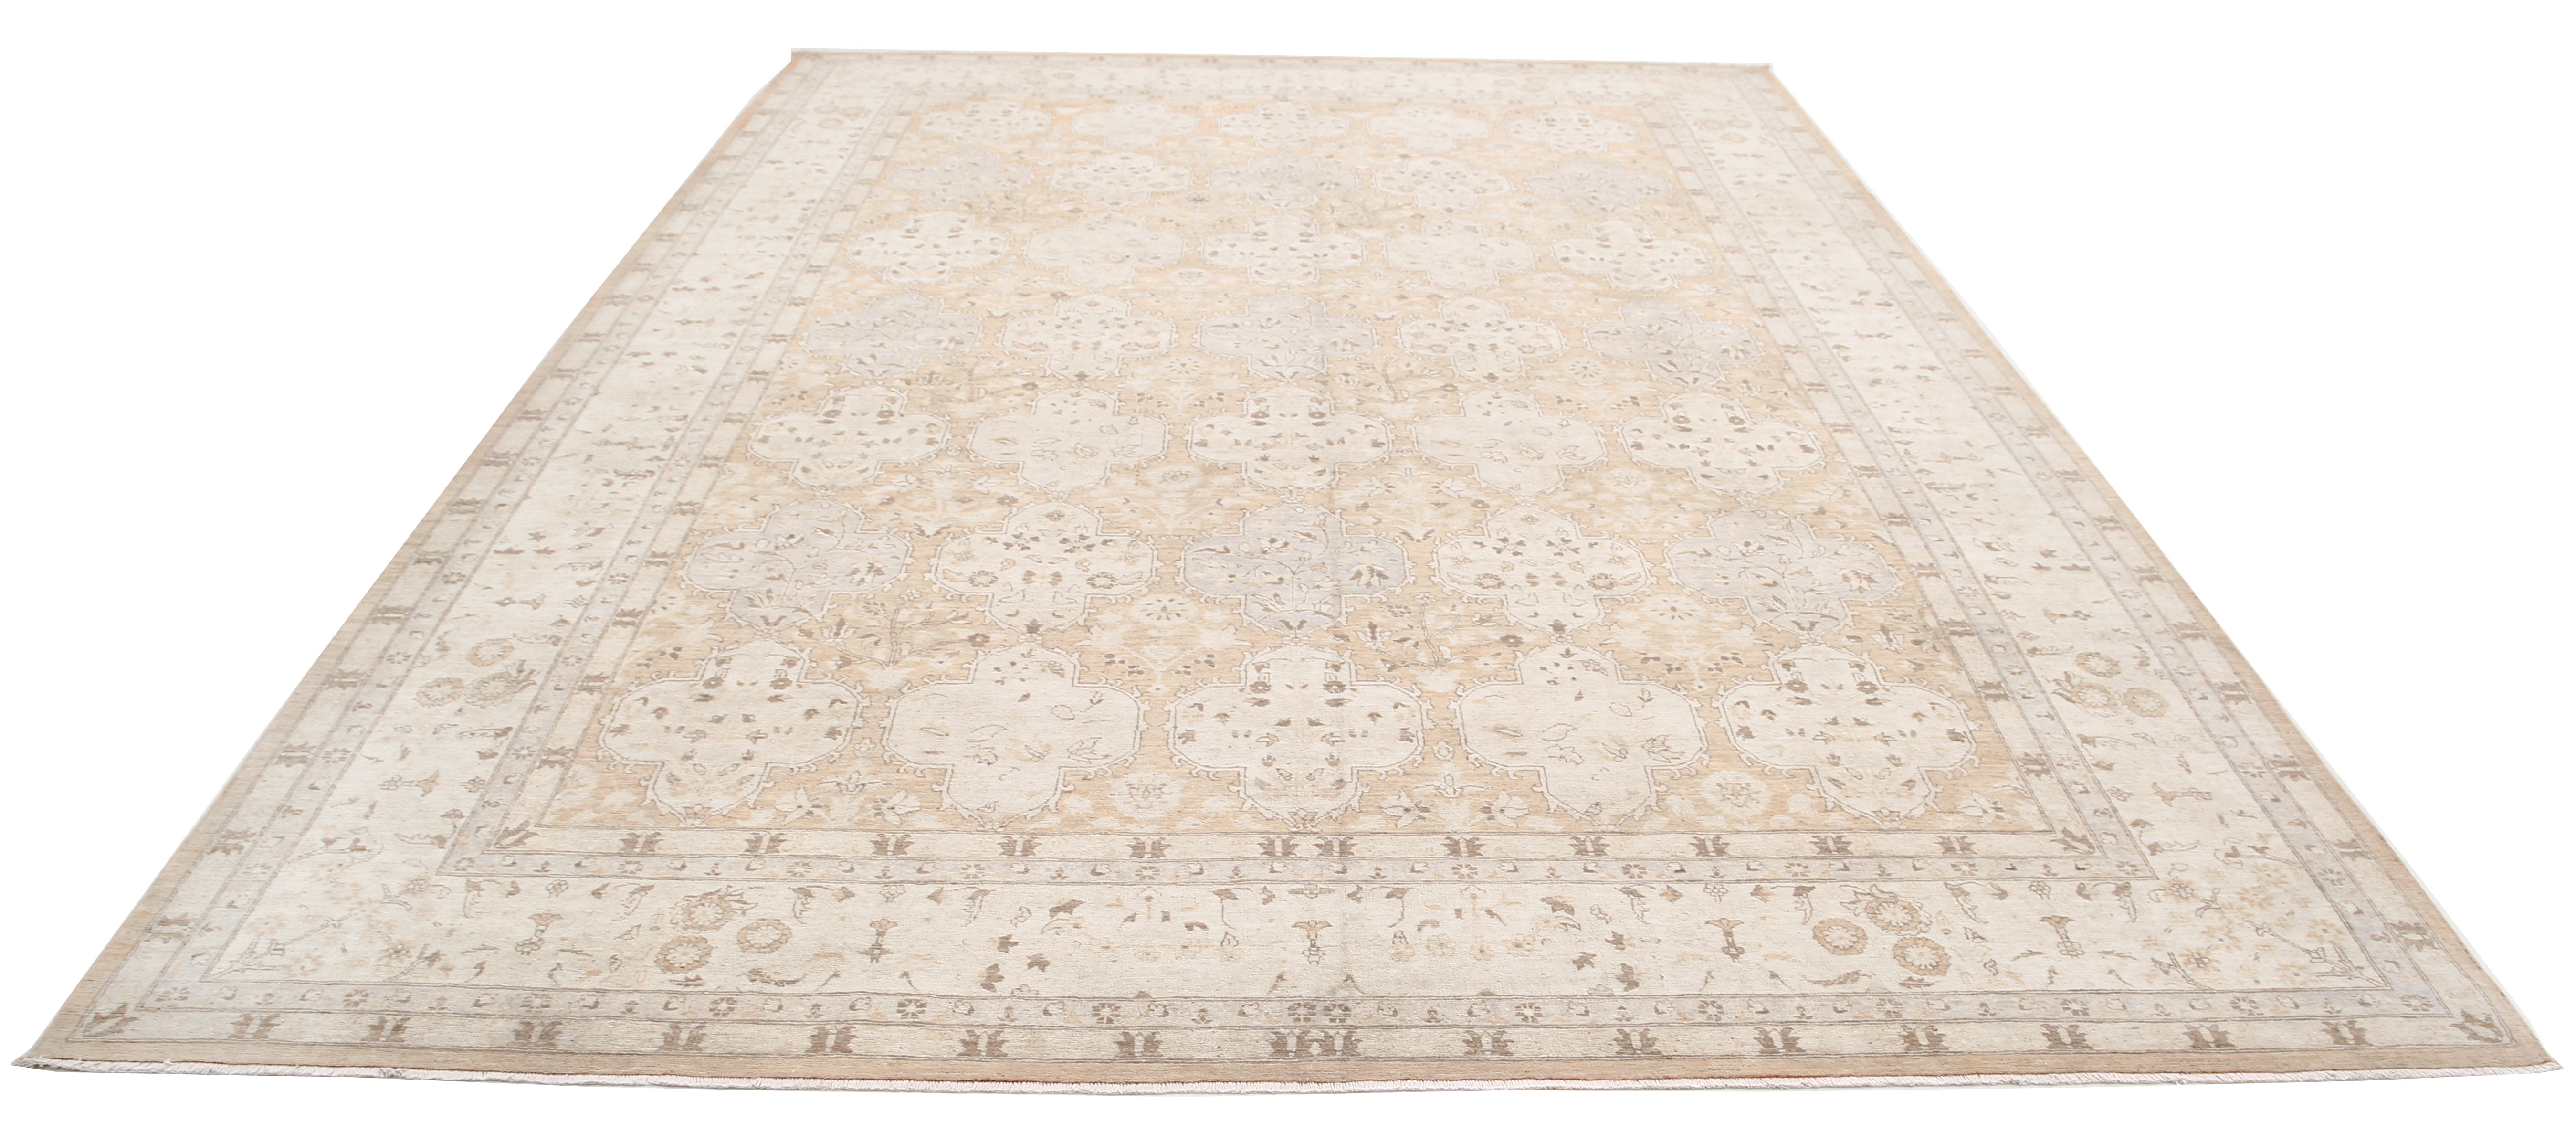 Handmade rugs, Carpet Culture Rugs, Traditional Rugs, Cheap Rugs, New Rugs, Rugs in NYC, Online Rug Sale